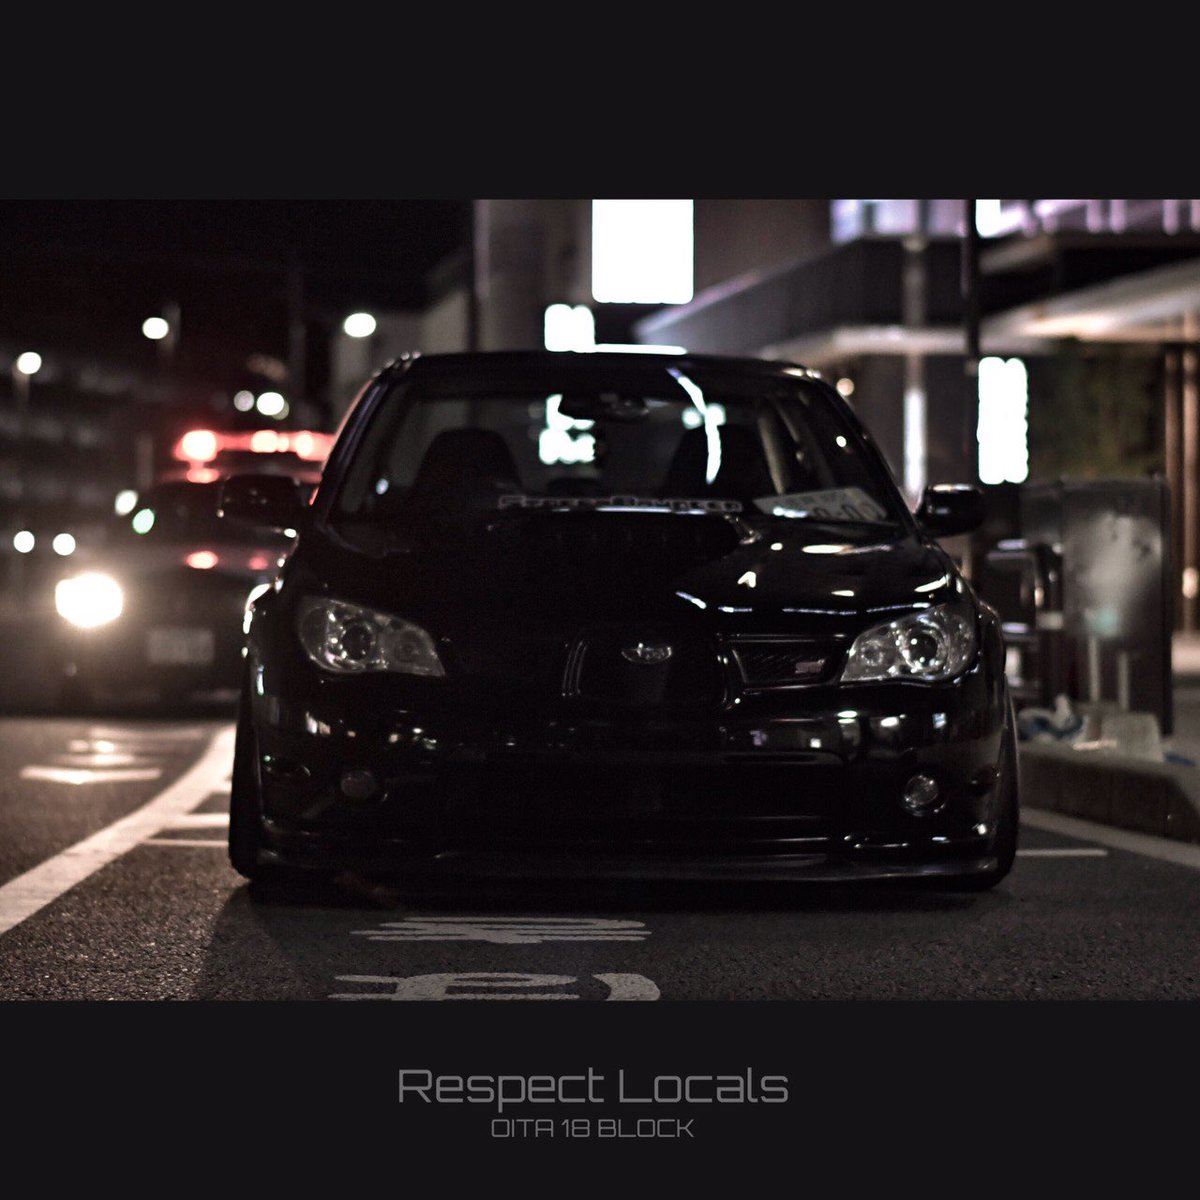 STREET BOUNCER in OITAstation  GDB impreza  @gdb_614   photo by Respect Locals(@hello_fj )<br>http://pic.twitter.com/WSPzbJTx5w